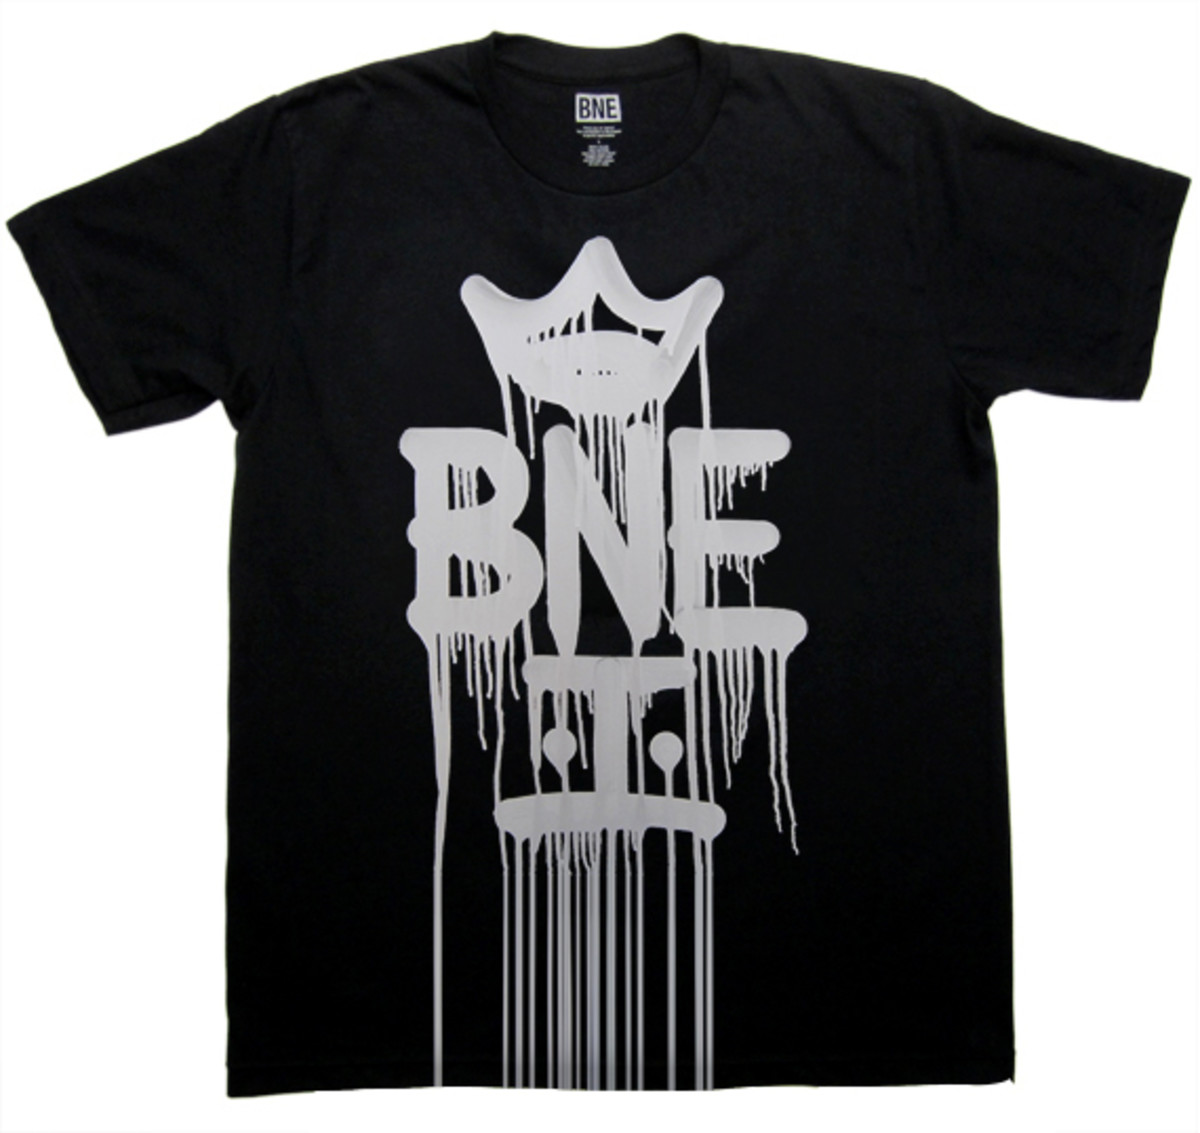 bne-water-foundation-fall-2012-t-shirt-collection-delivery-2-06